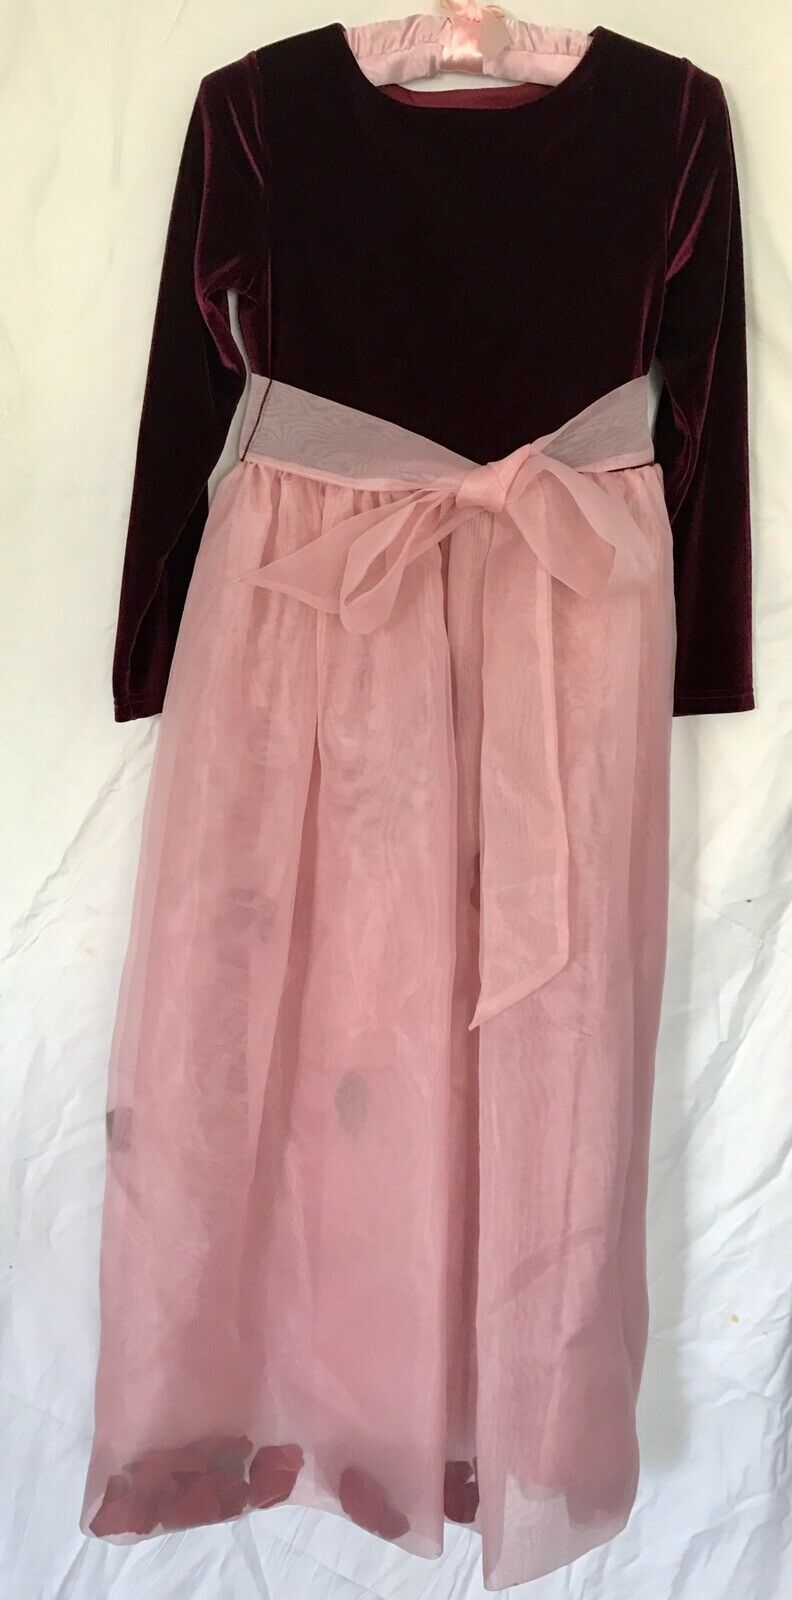 Girls Formal Dress Gown Dusty Rose Storybrook Heirloom Gowns Size 12 Pre-Owned